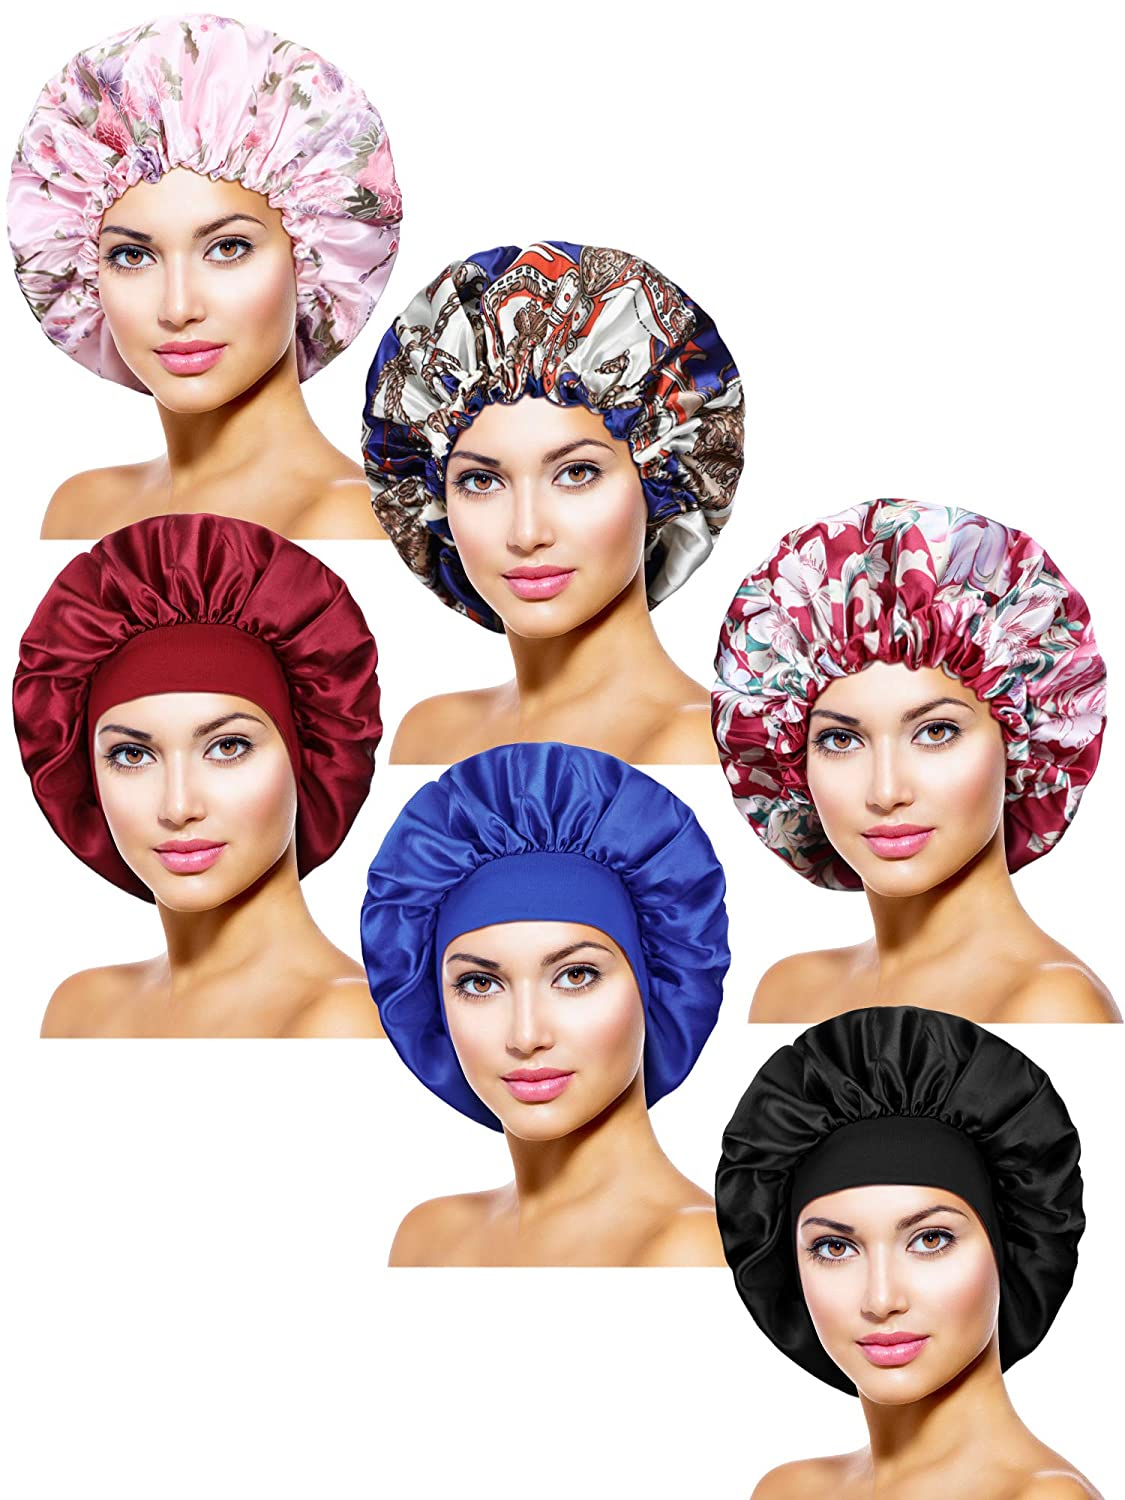 6 Pieces Satin Bonnet Sleep Cap Adjustable Elastic Drawstring Night Hat Wide Edge Sleep Cap in Different Patterns and Colors for Women Girls Sleeping Supplies